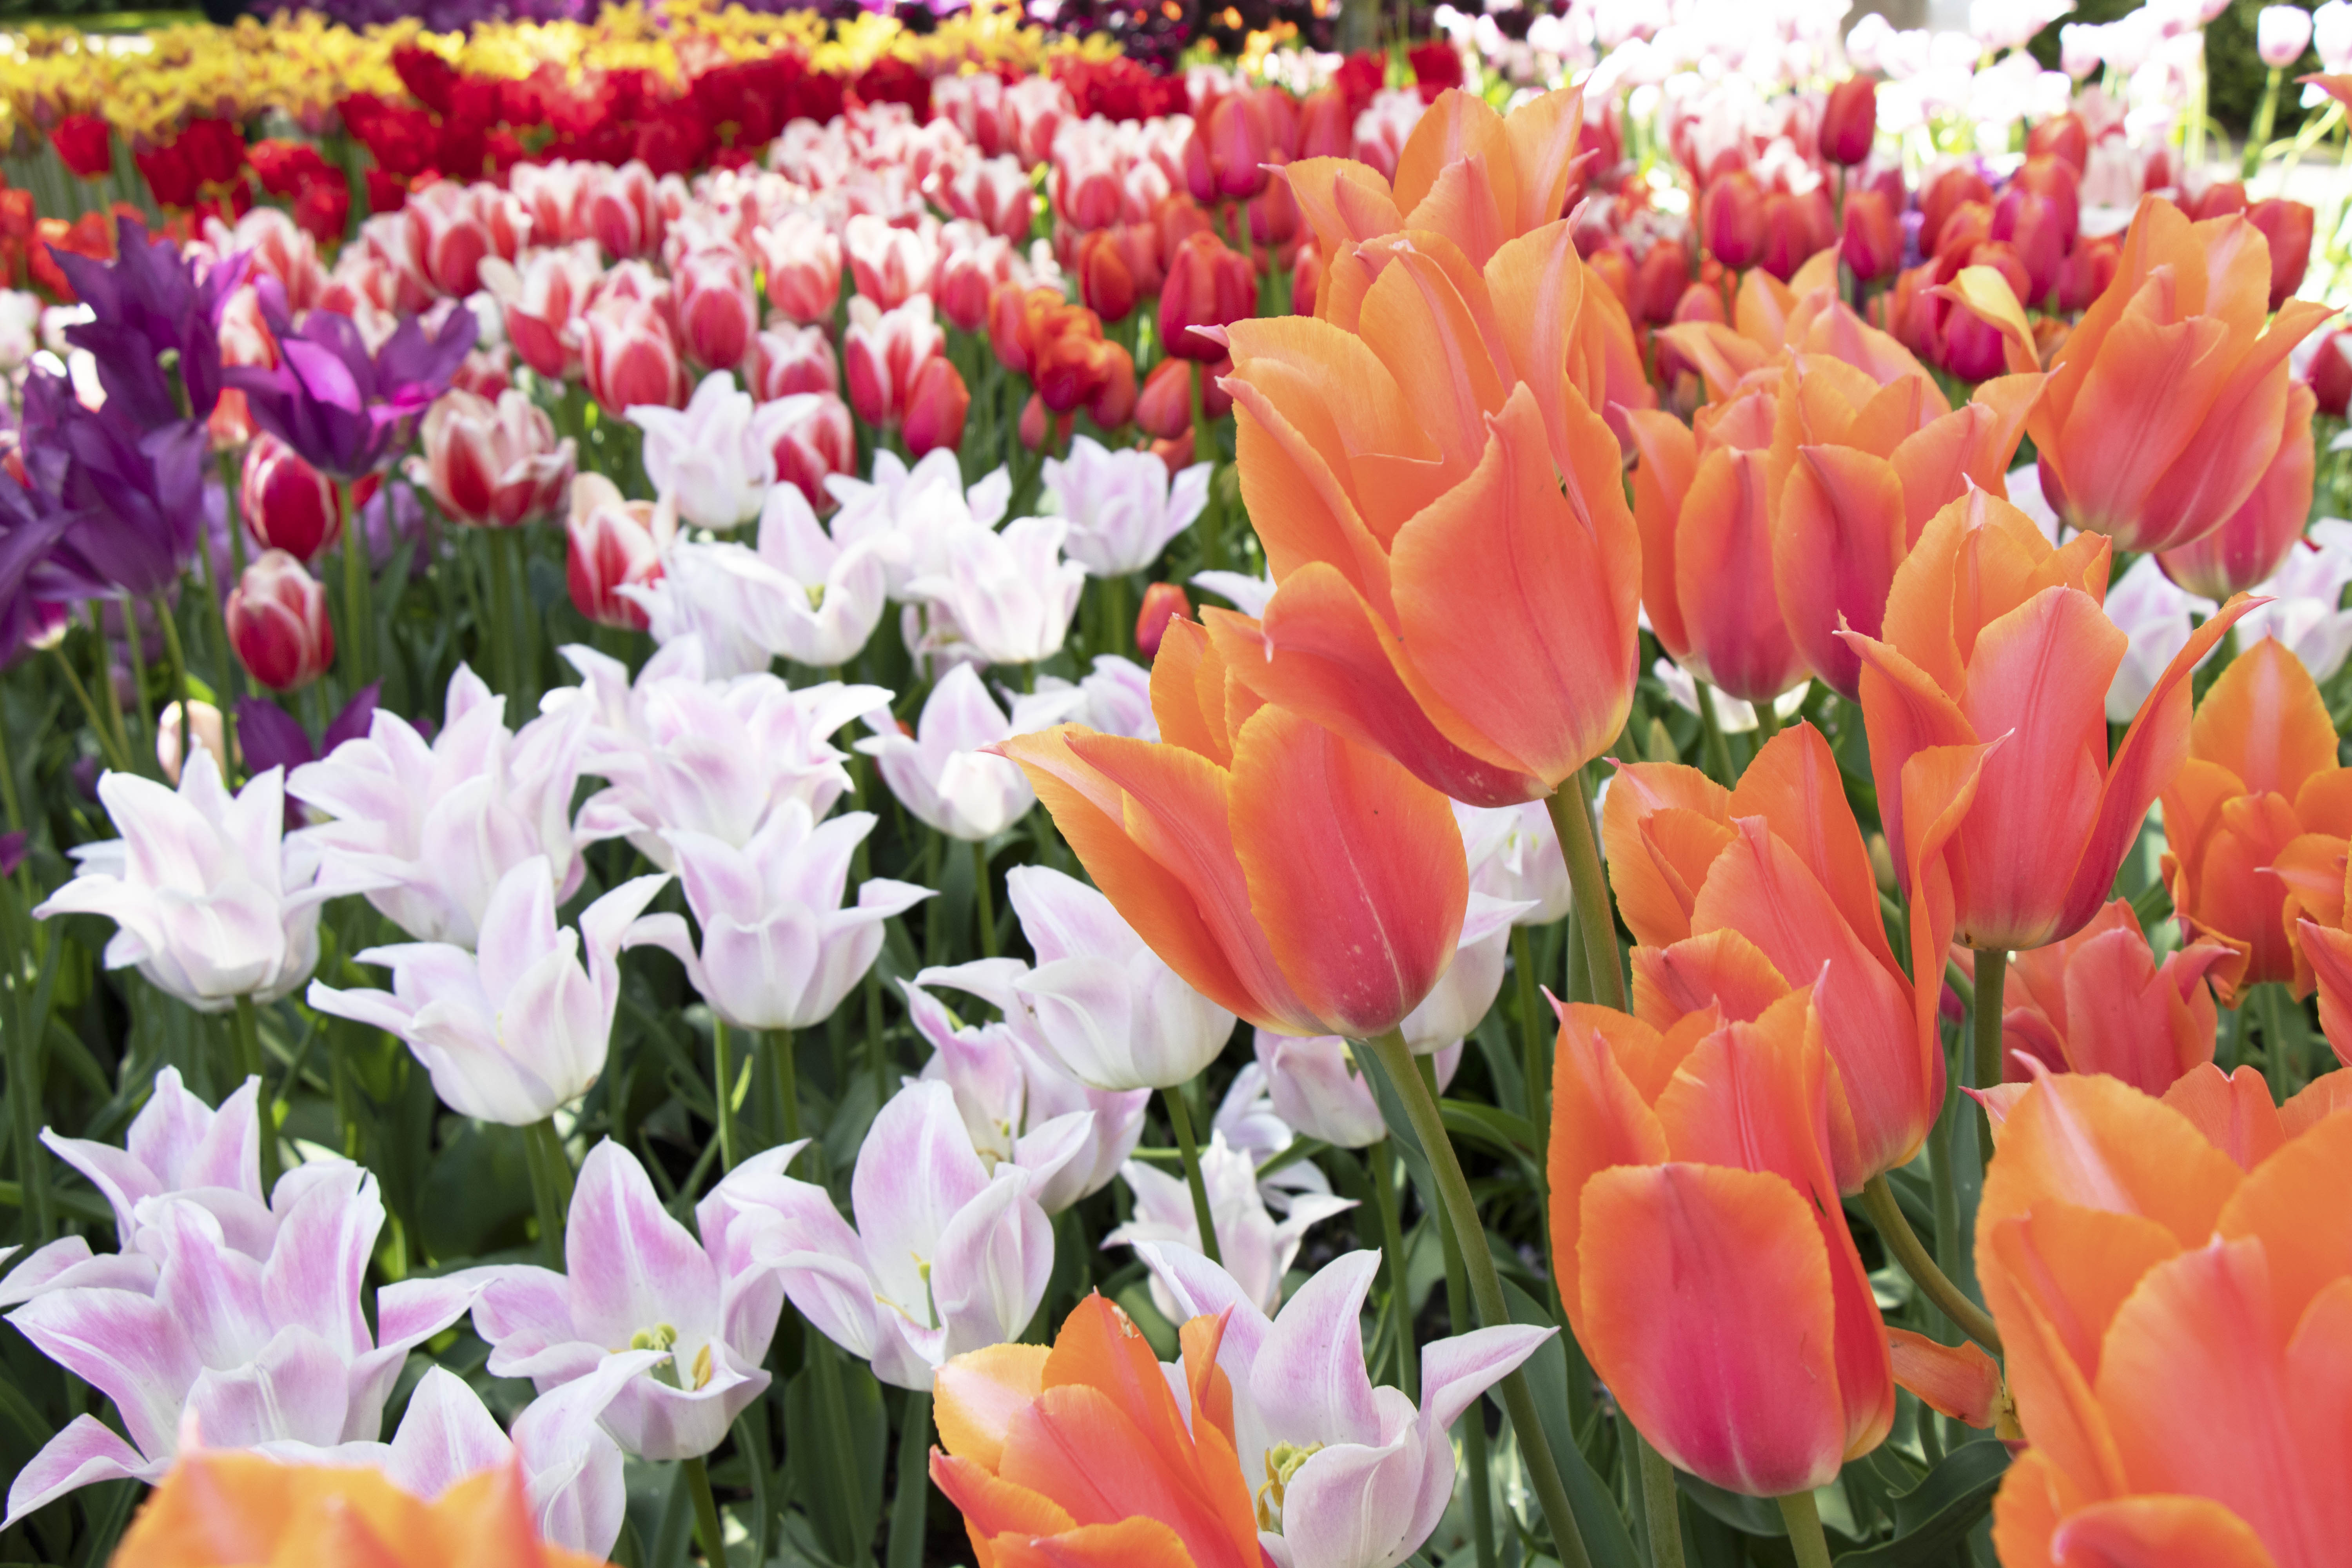 Tulips at Keukenhof - Lisse, Netherlands